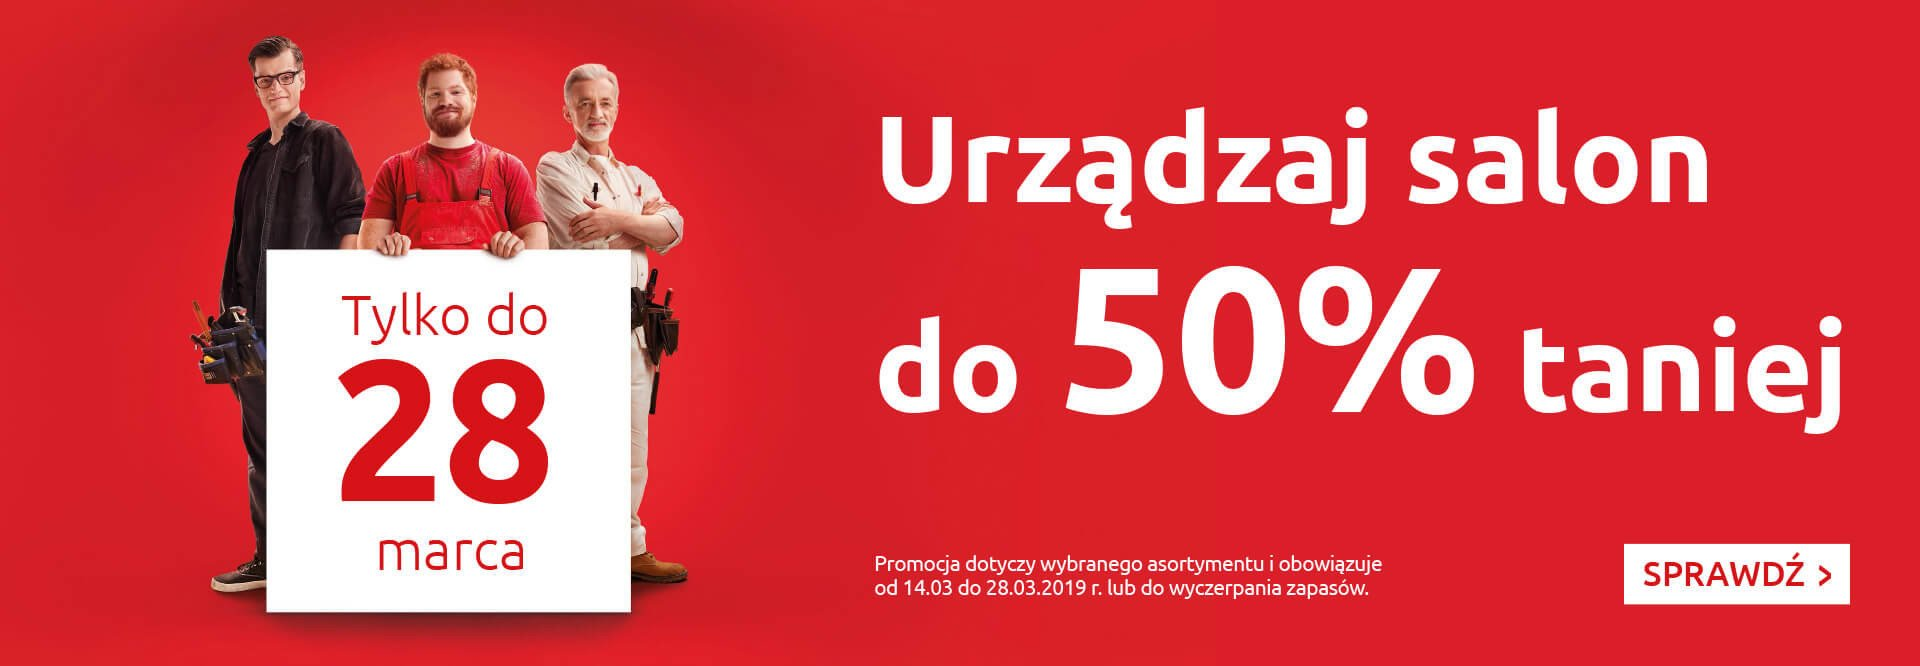 Urządzaj salon do 50% taniej z Black Red White!